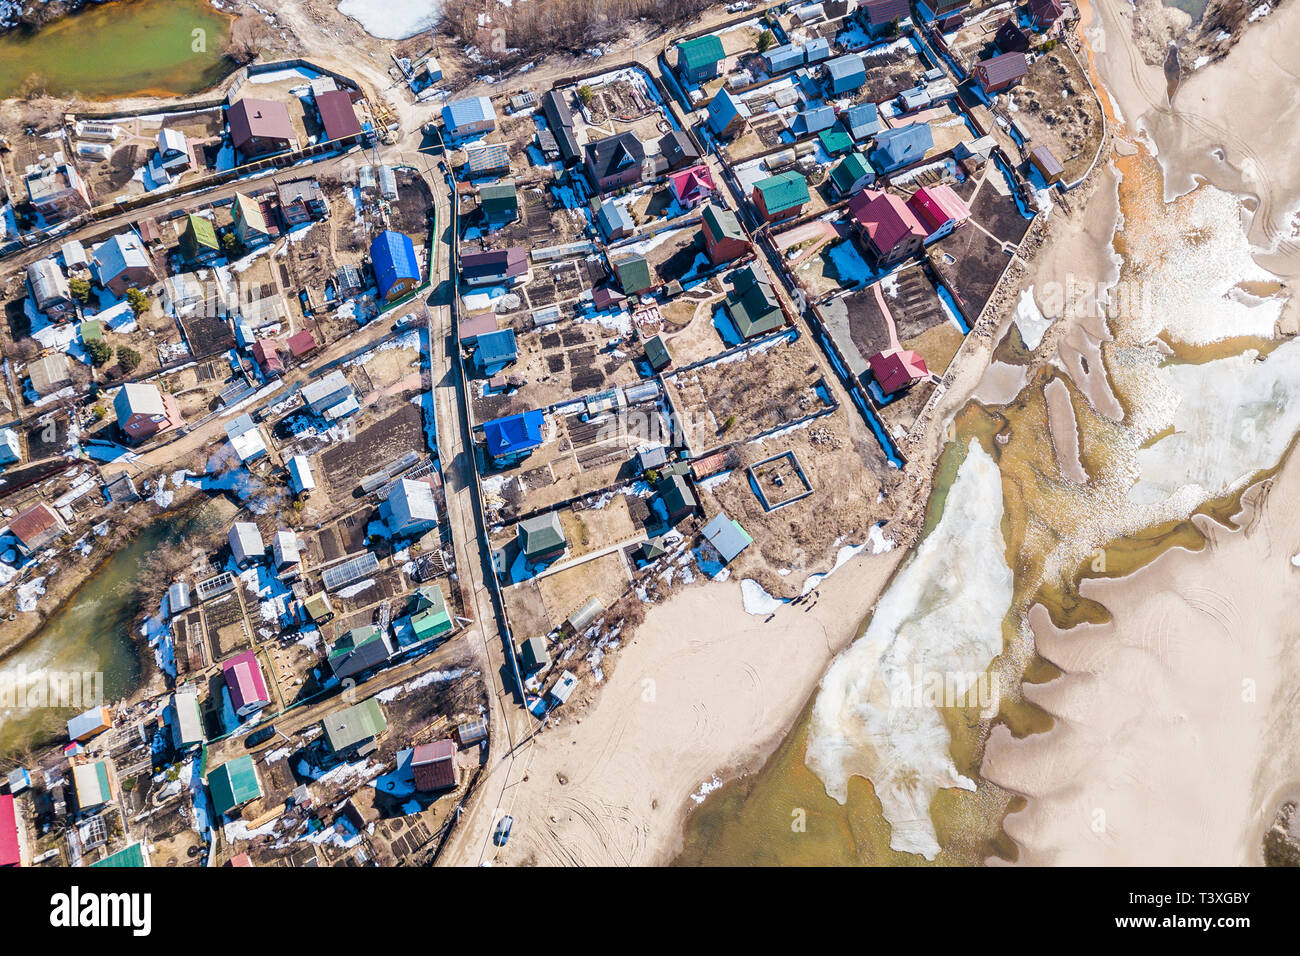 Aerial photography of a small village with villas and cottages, river, beach,forest and roads. Helicopter drone shot - Stock Image